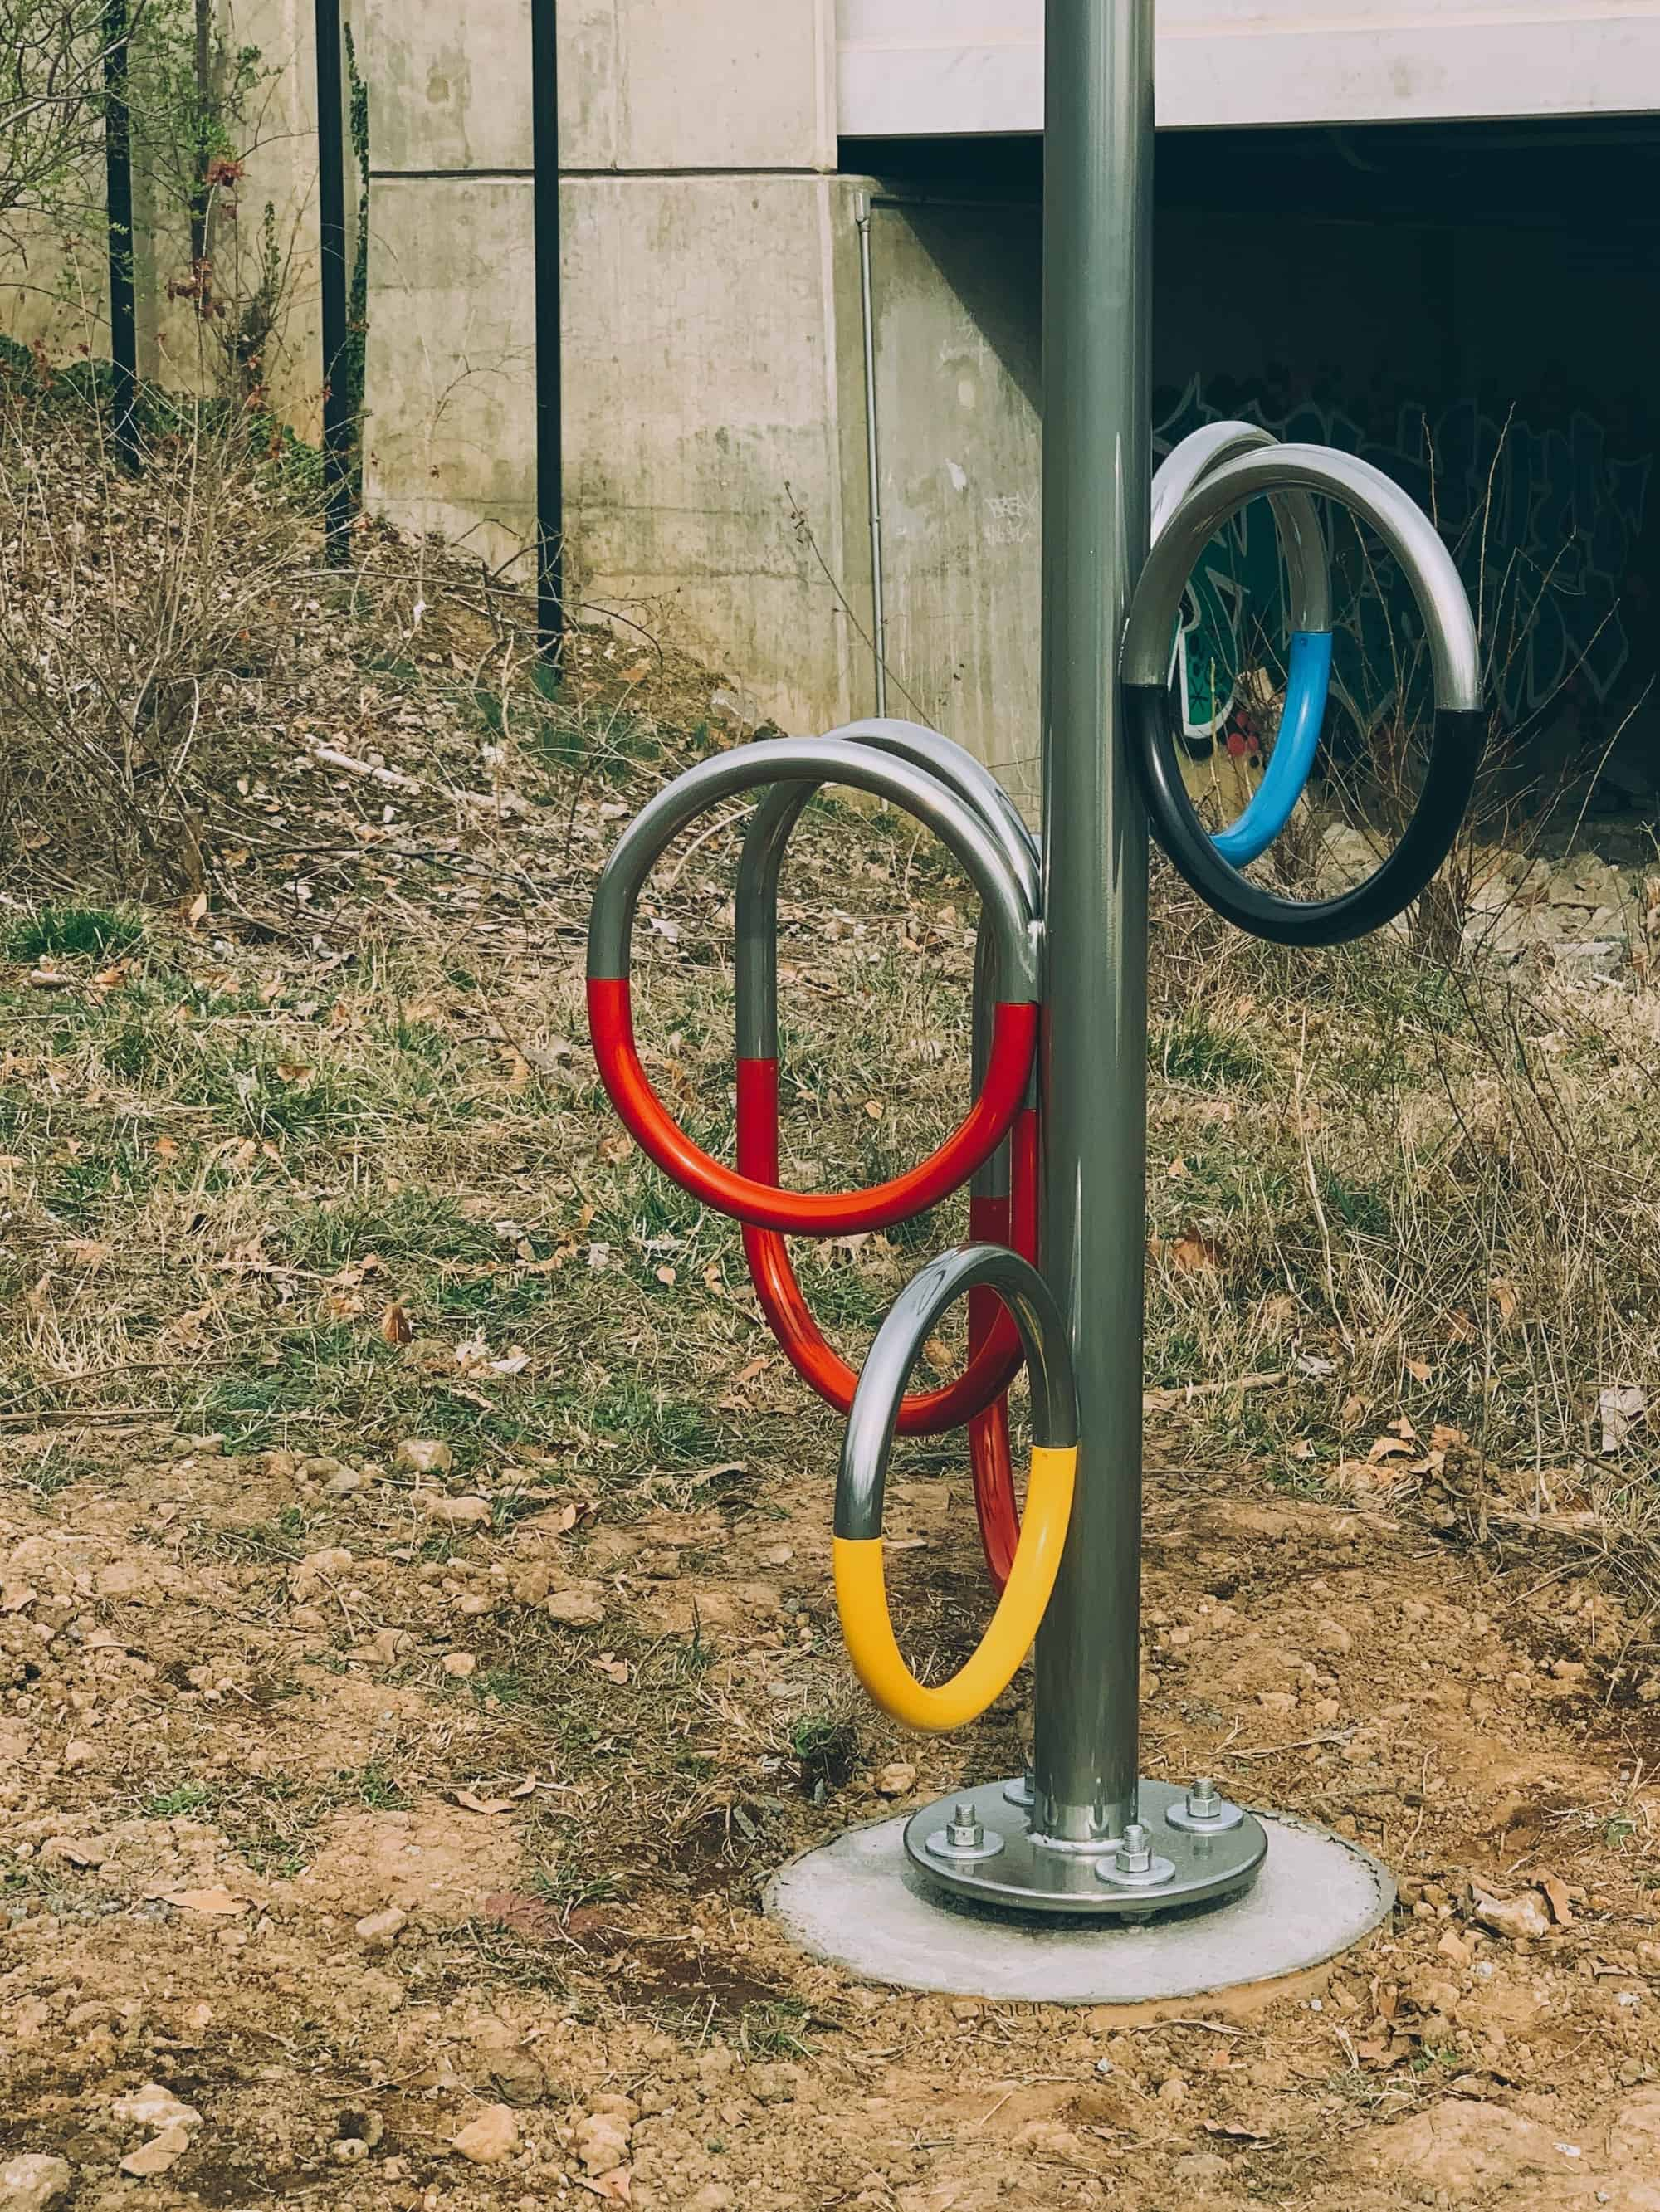 Detail of Marvin Gaye Park location of High Water Mark showing footing assembly, chrome paint, and color-coded flags.